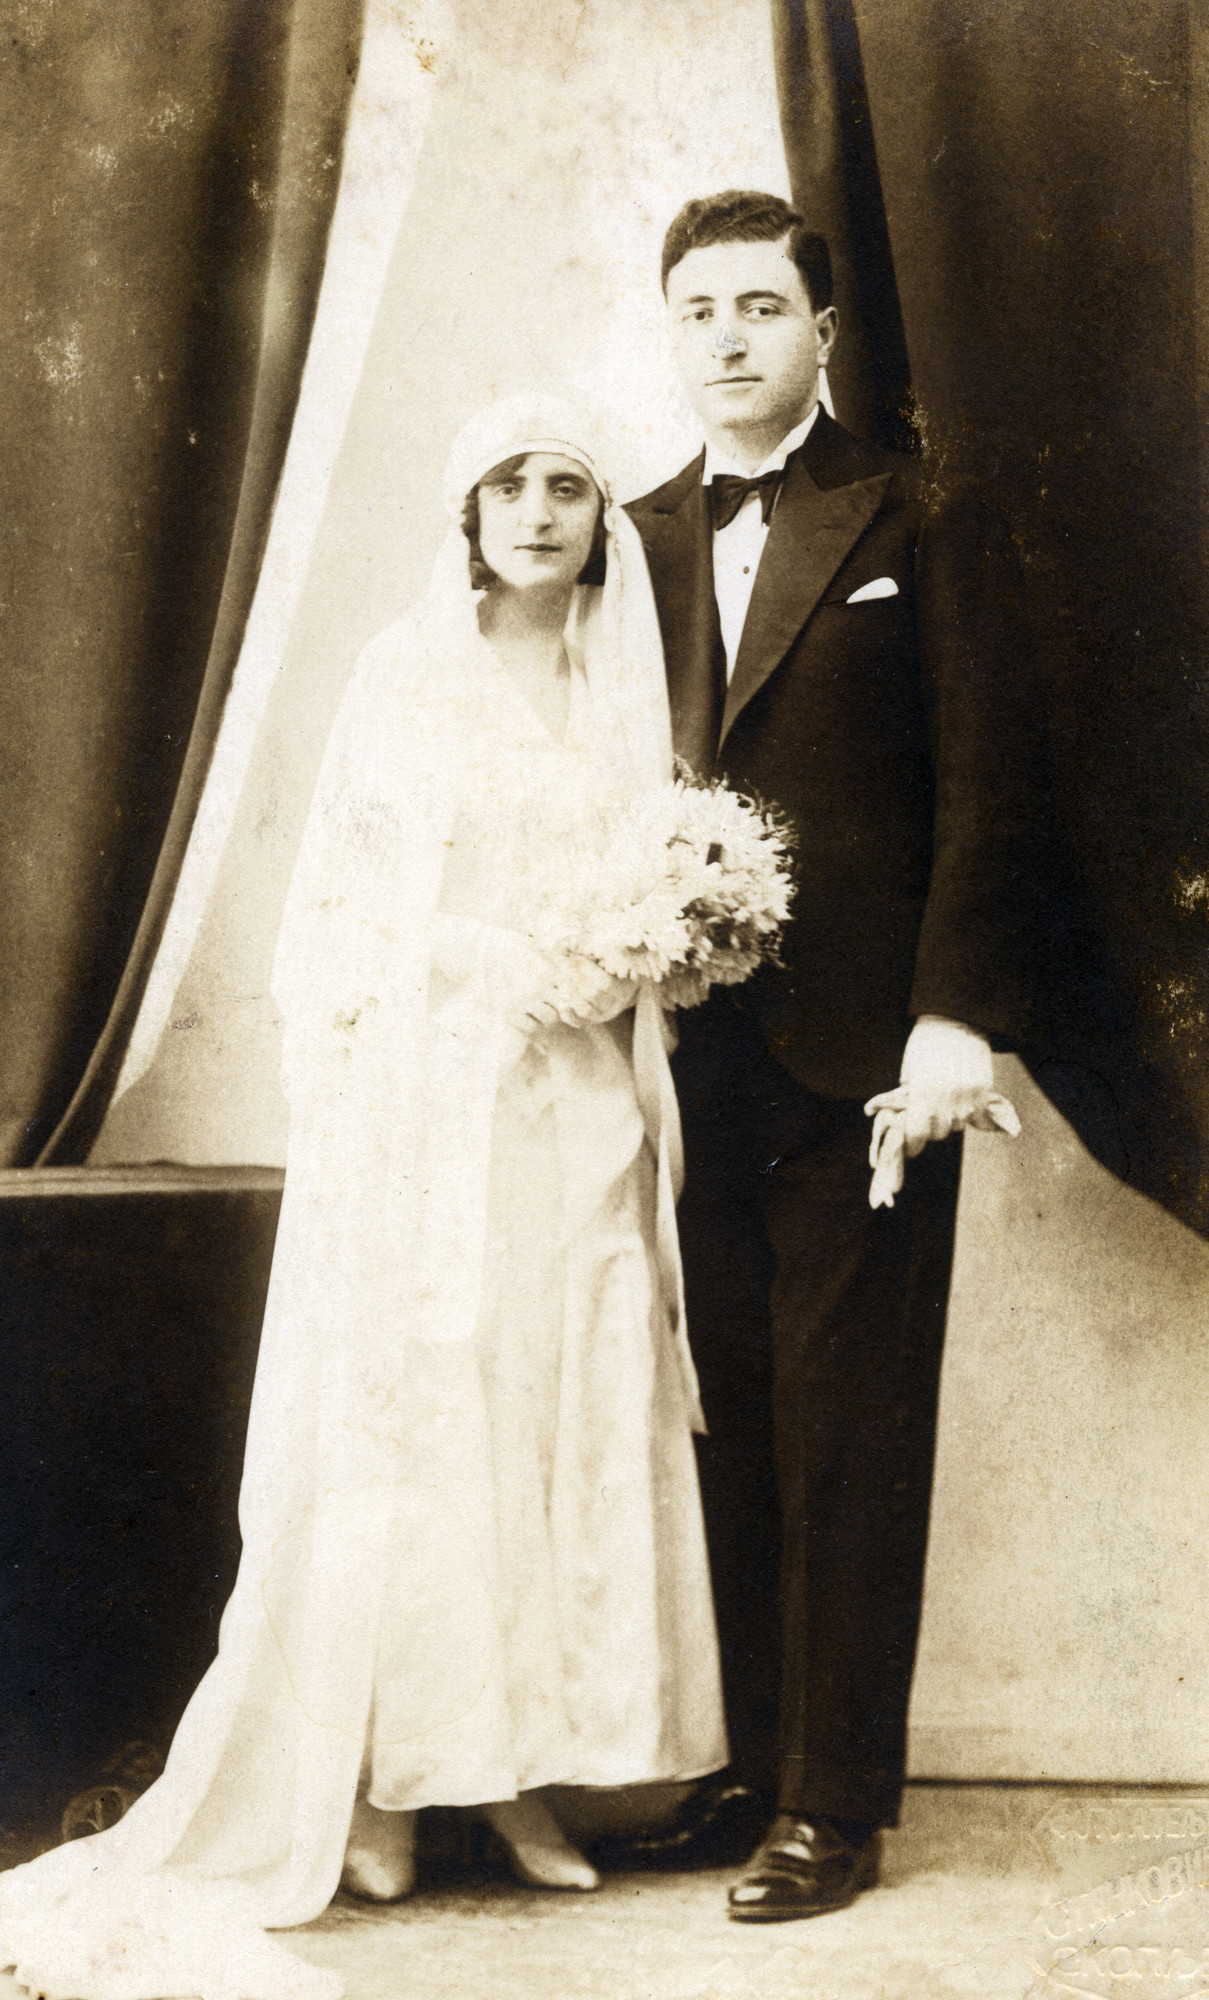 Wedding portrait of Sarina and Jacques Colonomos.